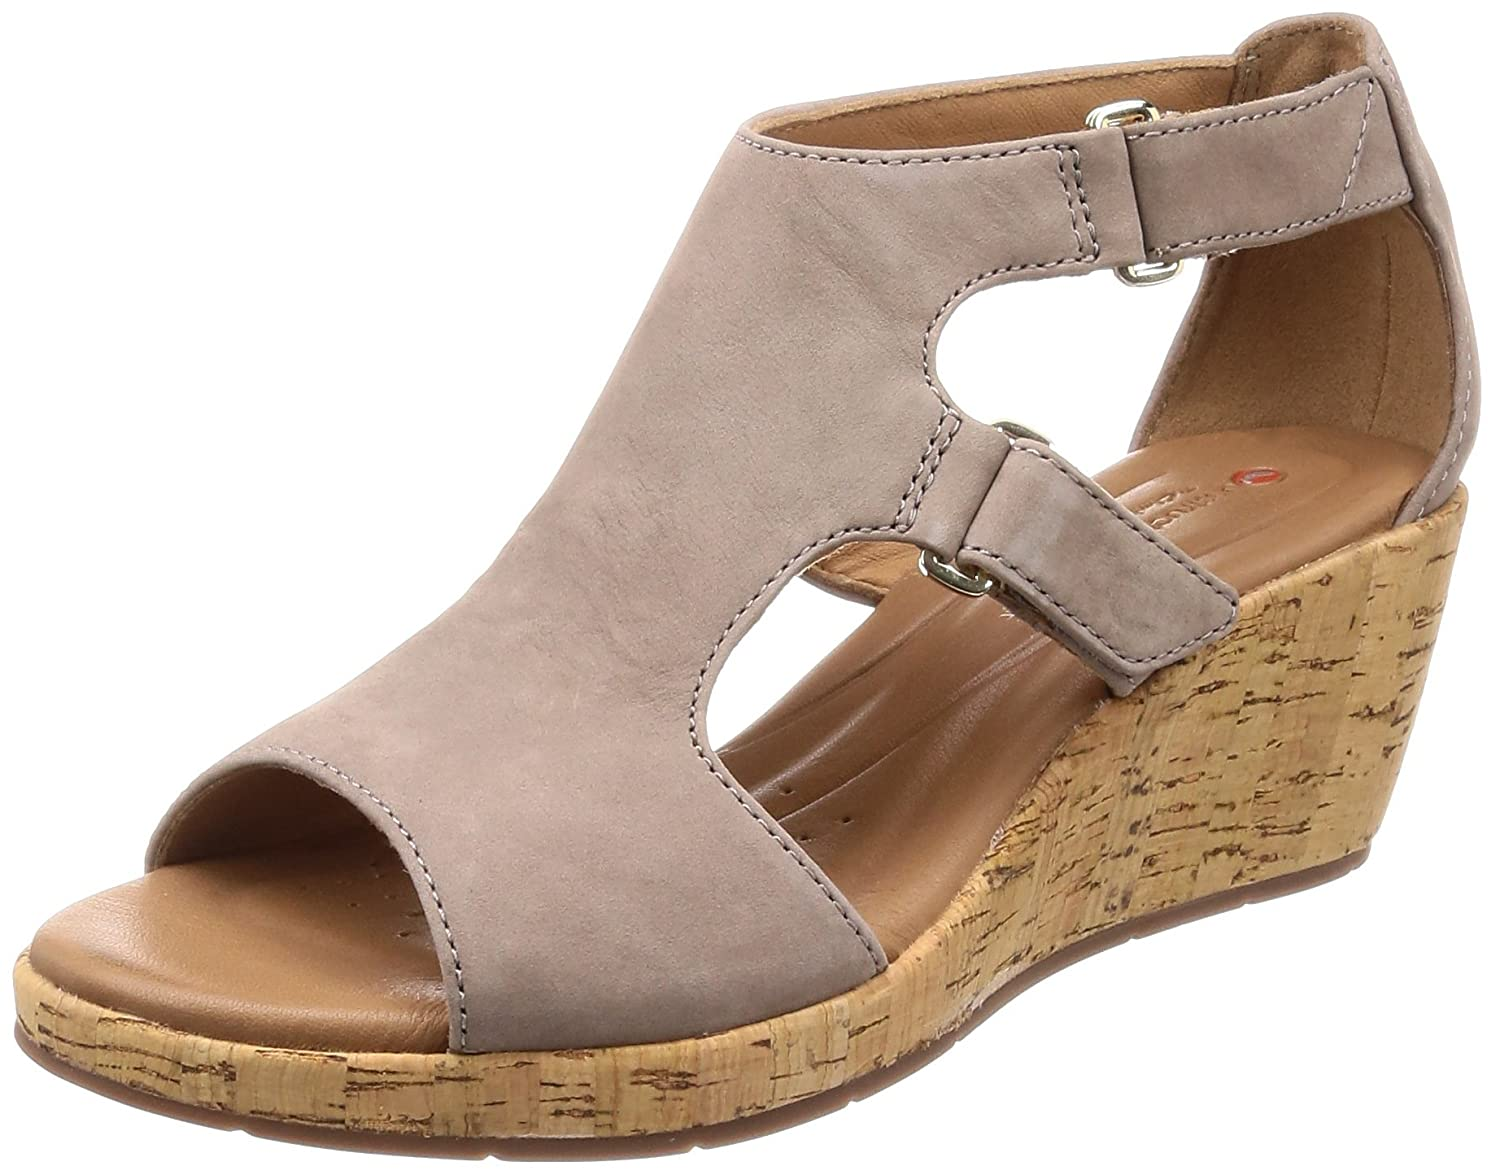 2e63e6d1bc3 Clarks Women s Un Plaza Ankle Strap Sandals  Amazon.co.uk  Shoes   Bags